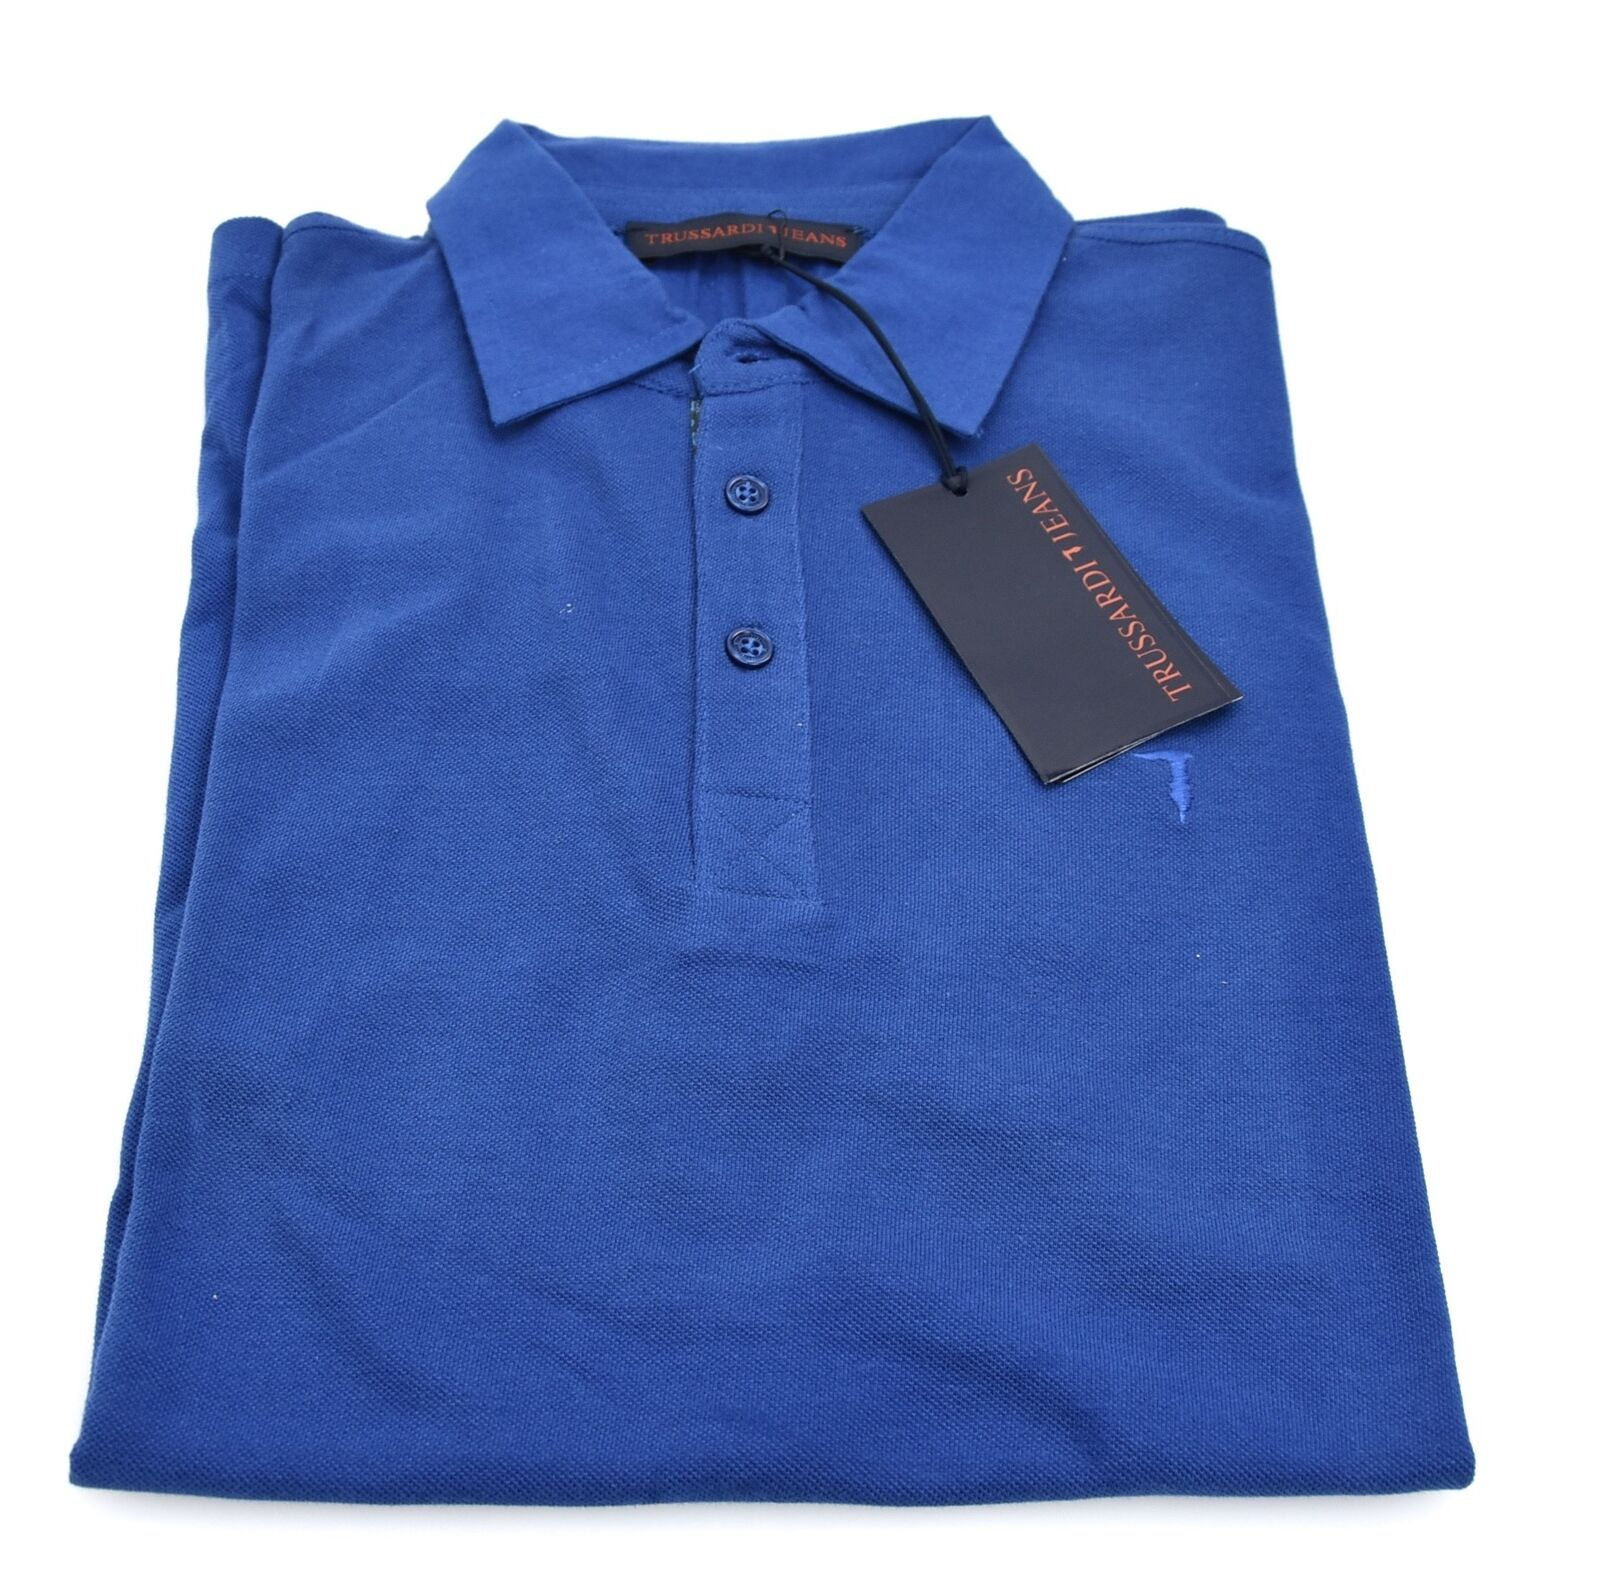 TRUSSARDI JEANS MAN POLO SHIRTS CASUAL FREE TIME COTTON SHORT SLEEVE CODE 52T60